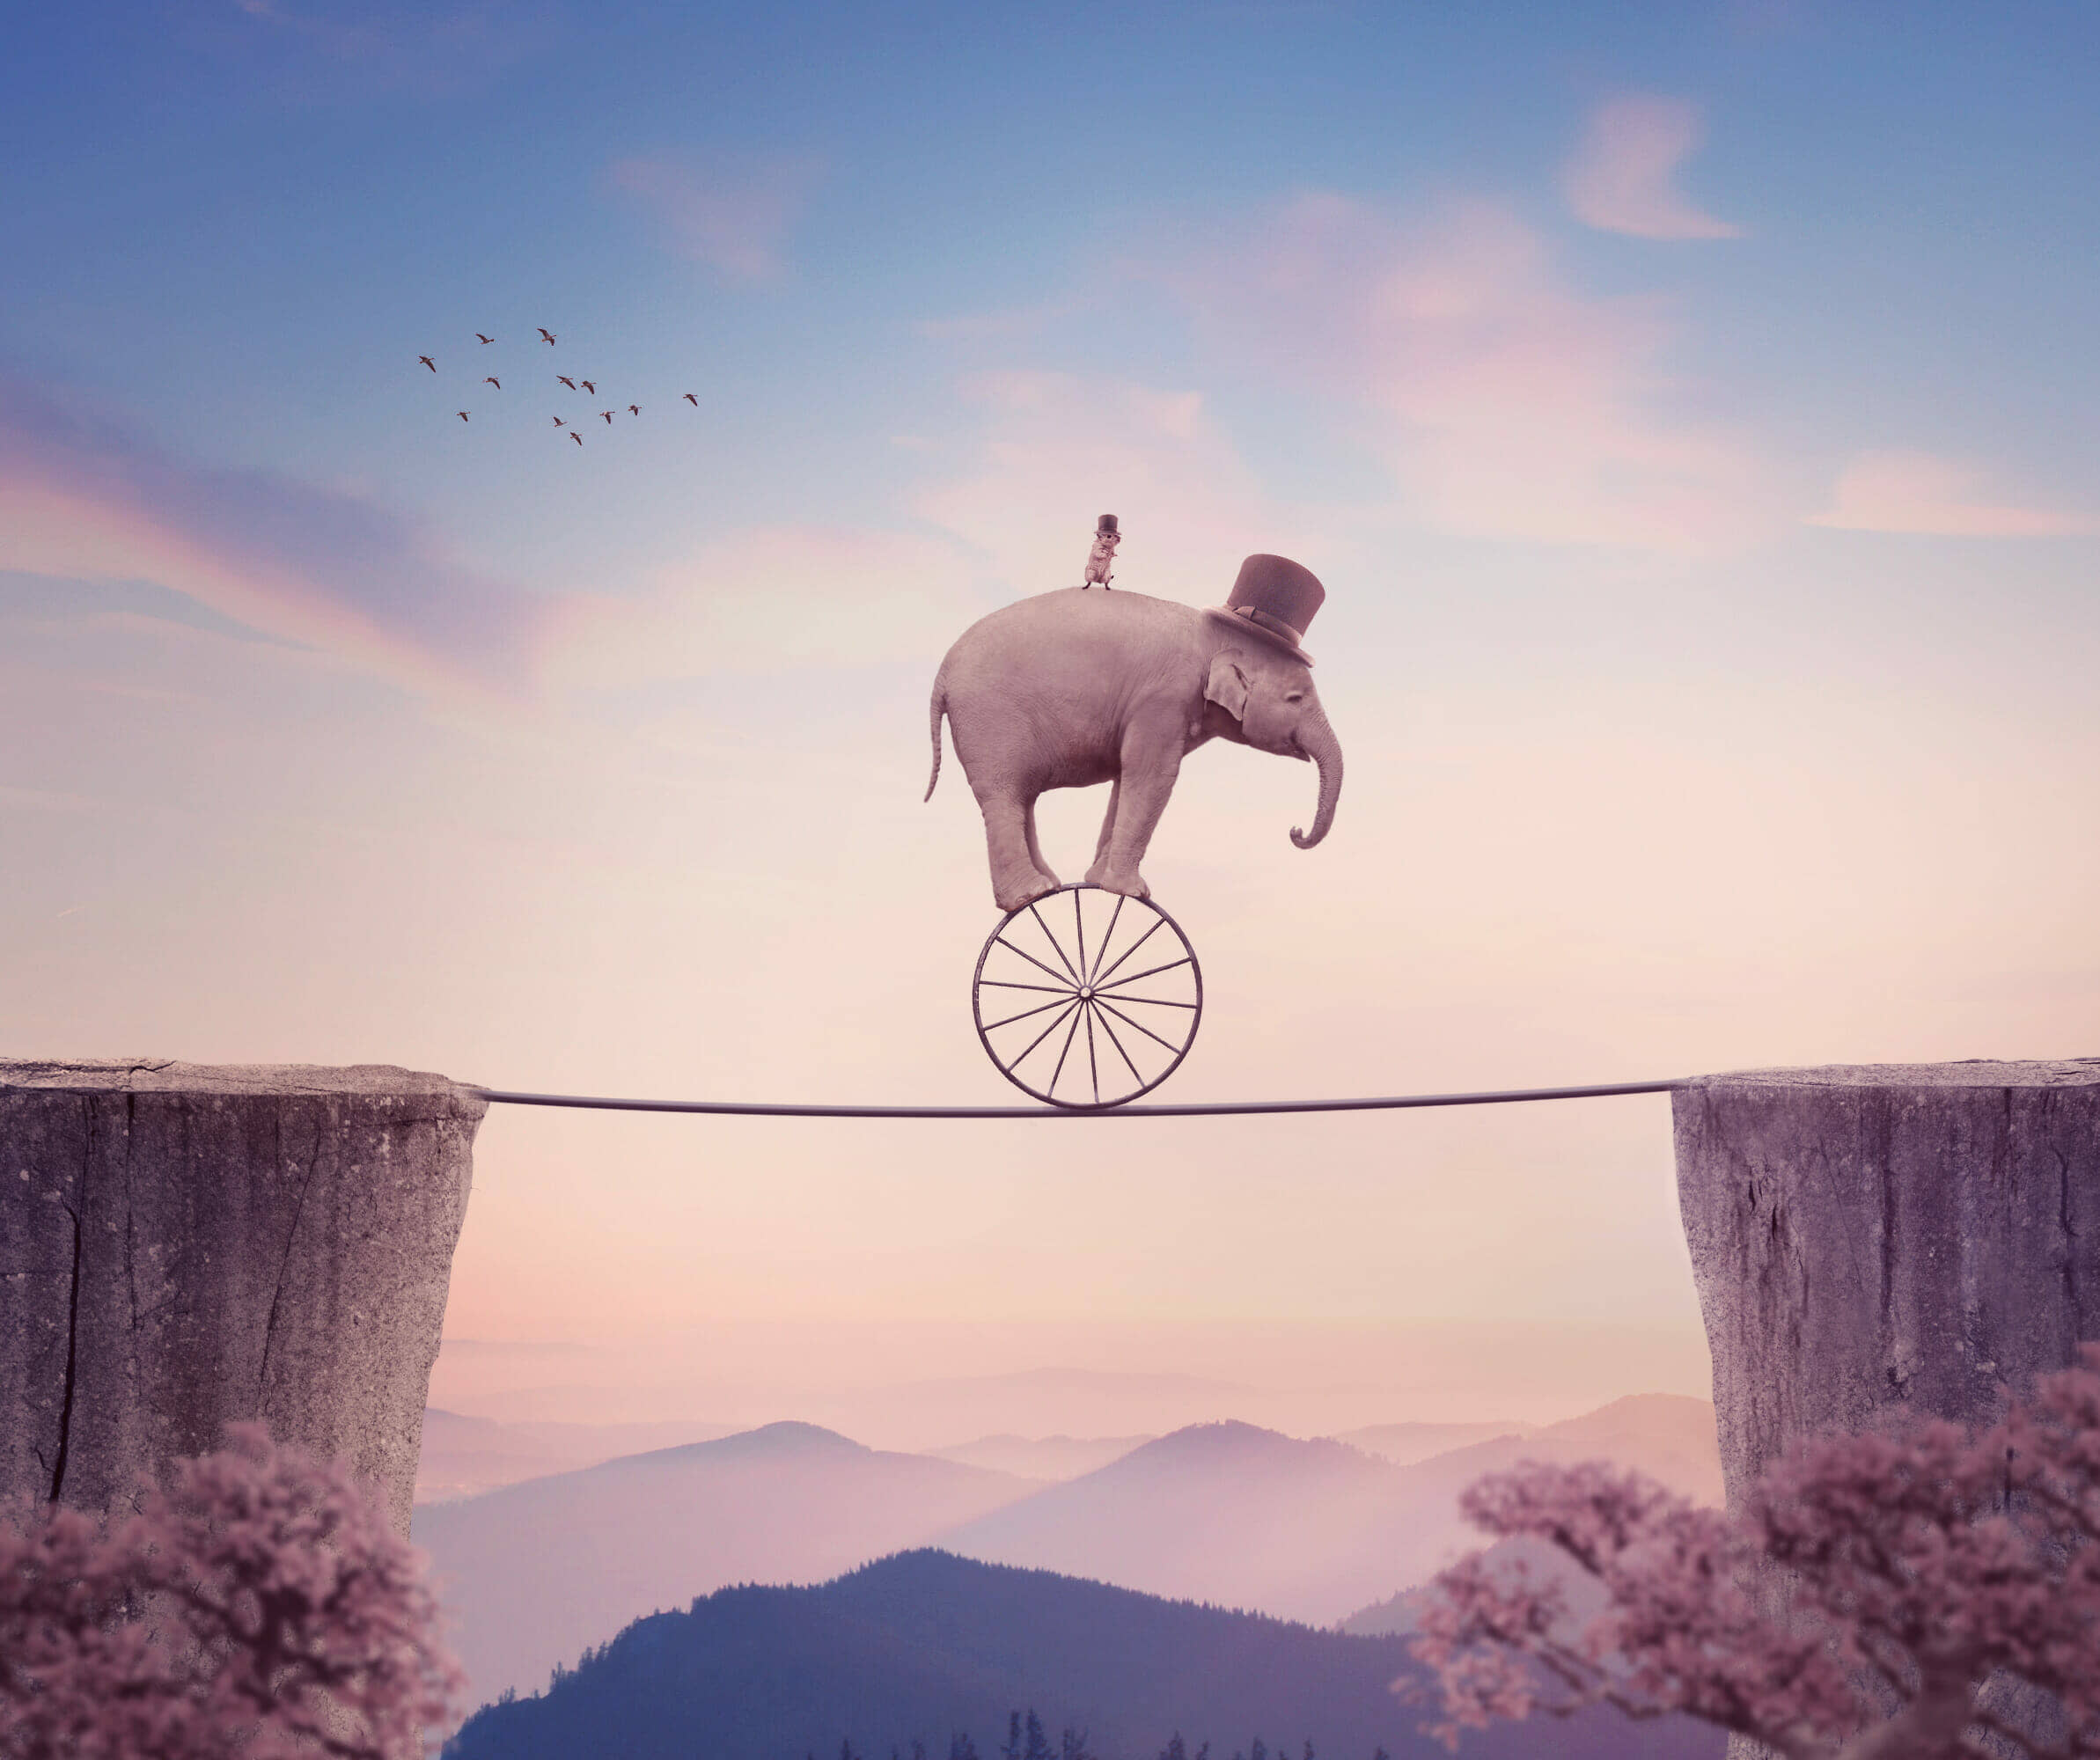 How to Create a Surreal Elephant Photo Manipulation with Adobe Photoshop